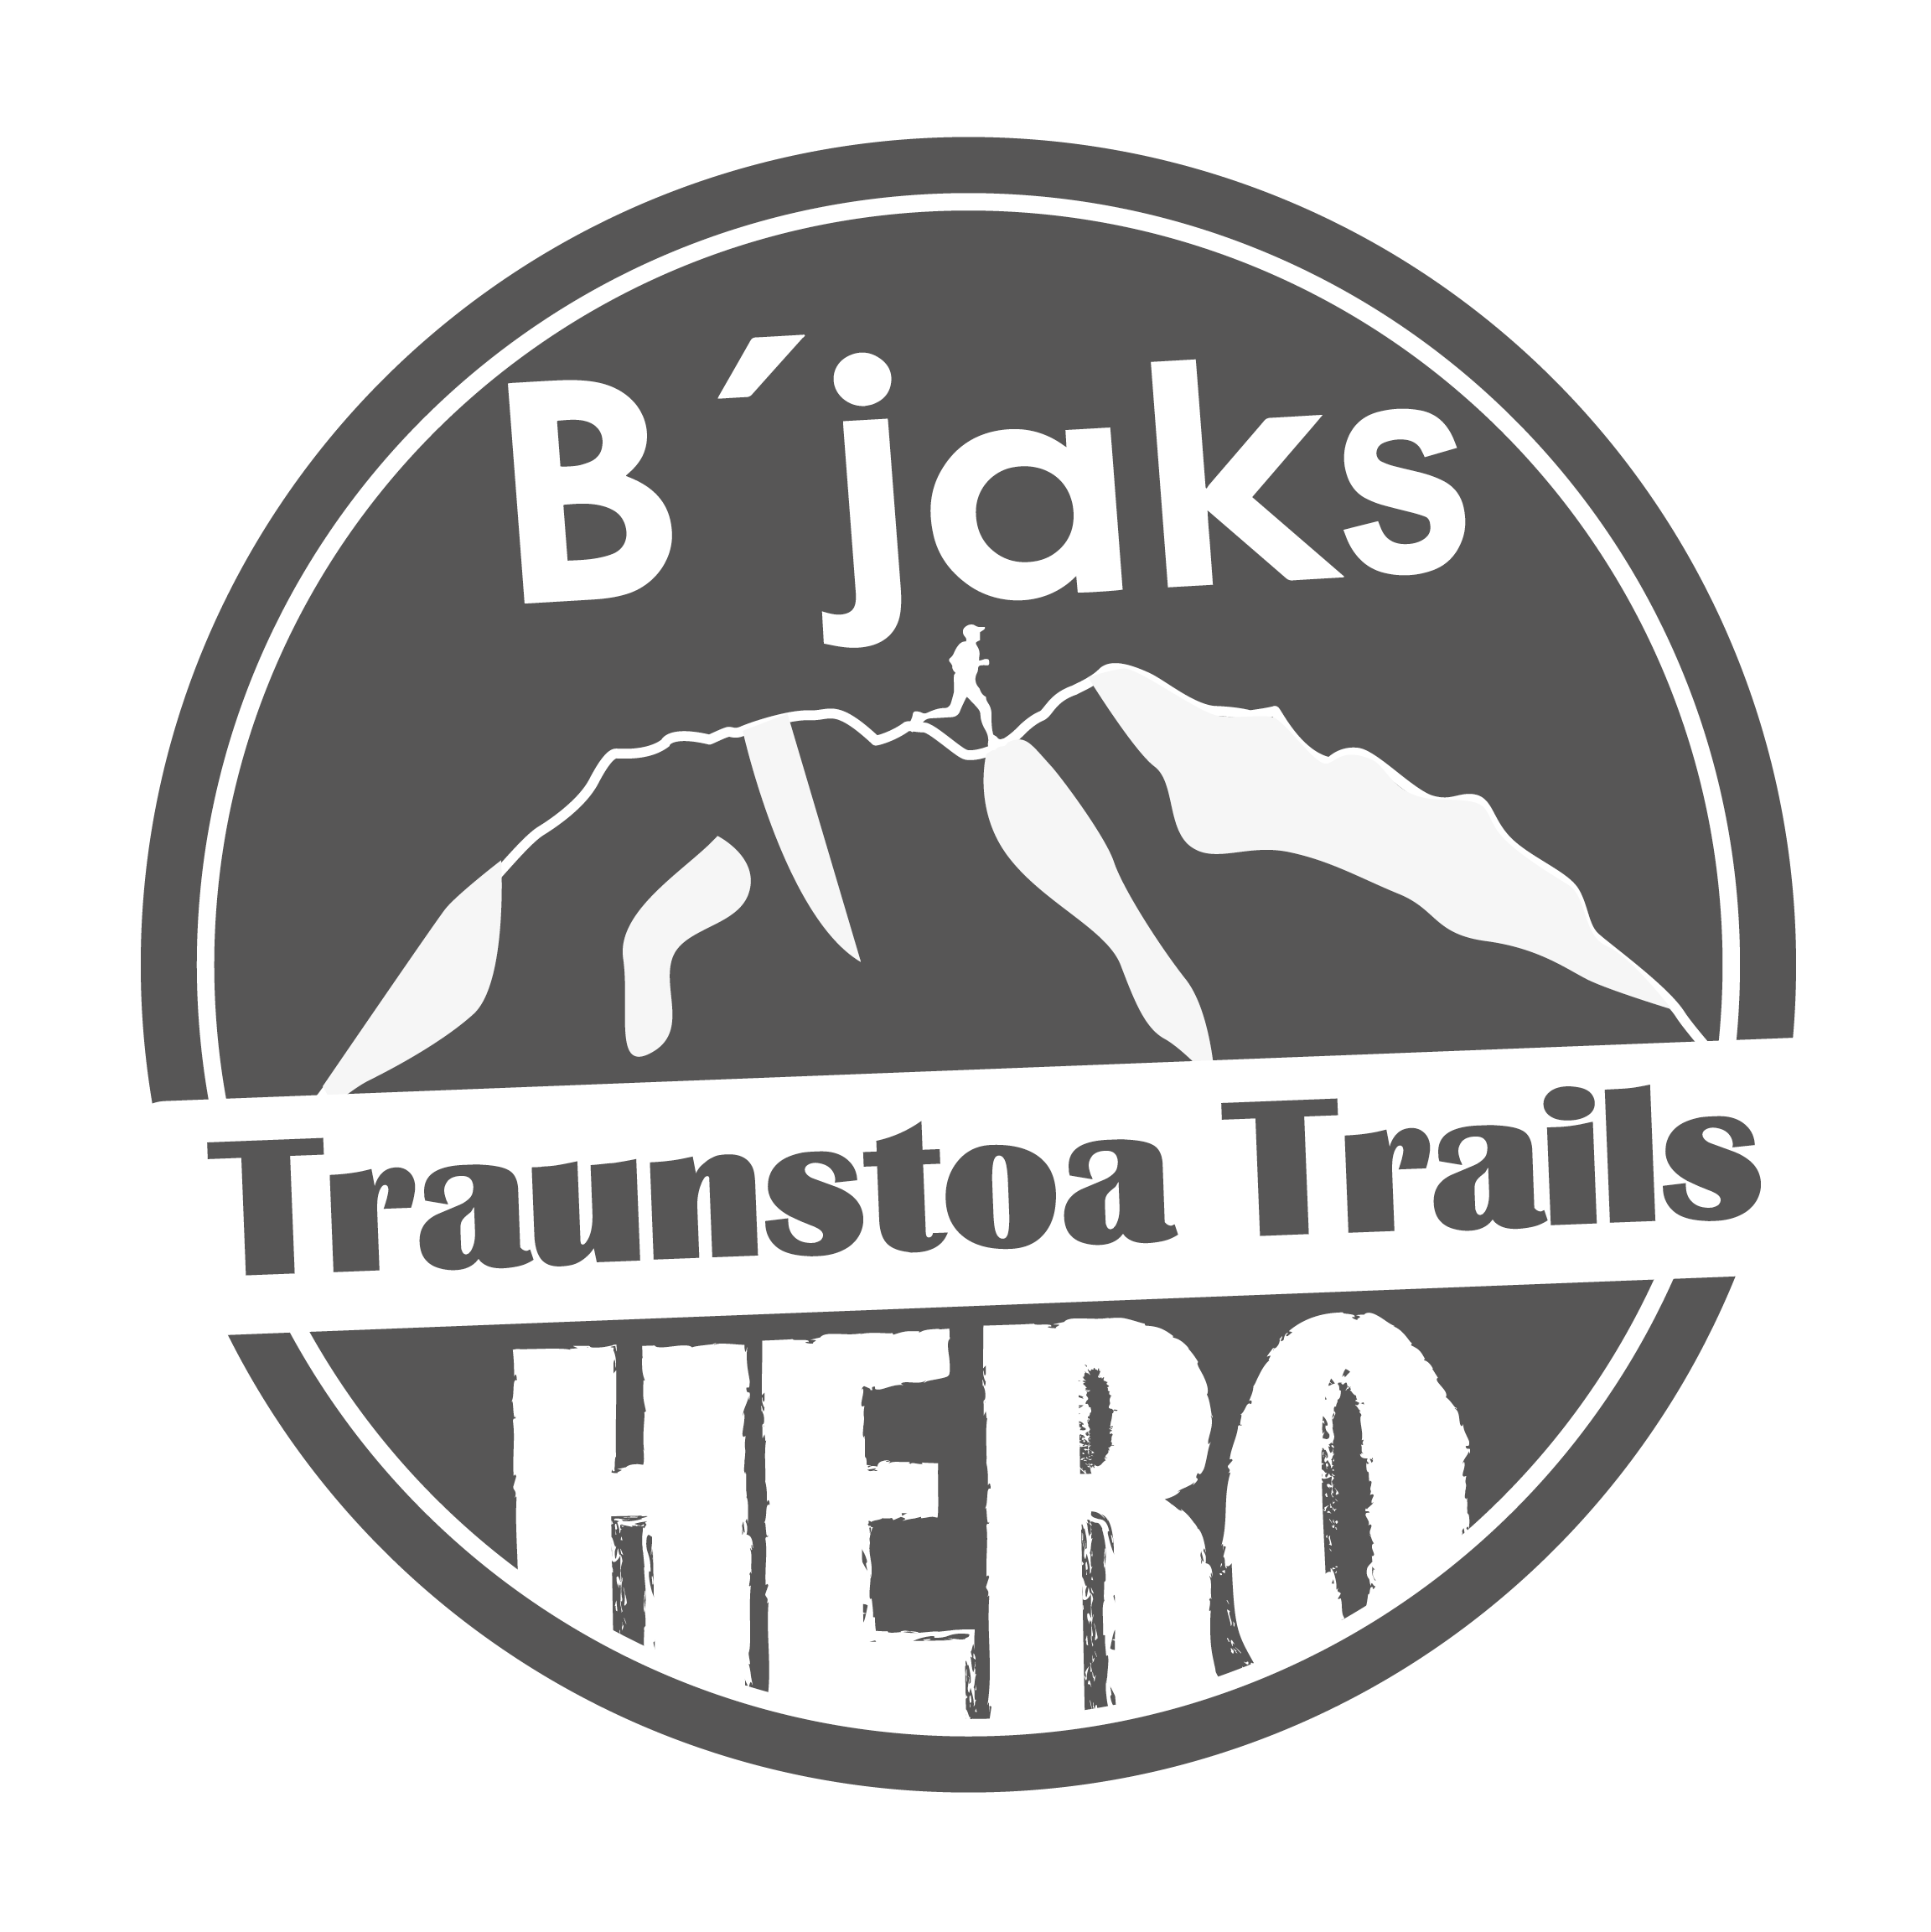 https://kat100.at/wp-content/uploads/2018/10/Logo-Traunstoa-Trails-13.png